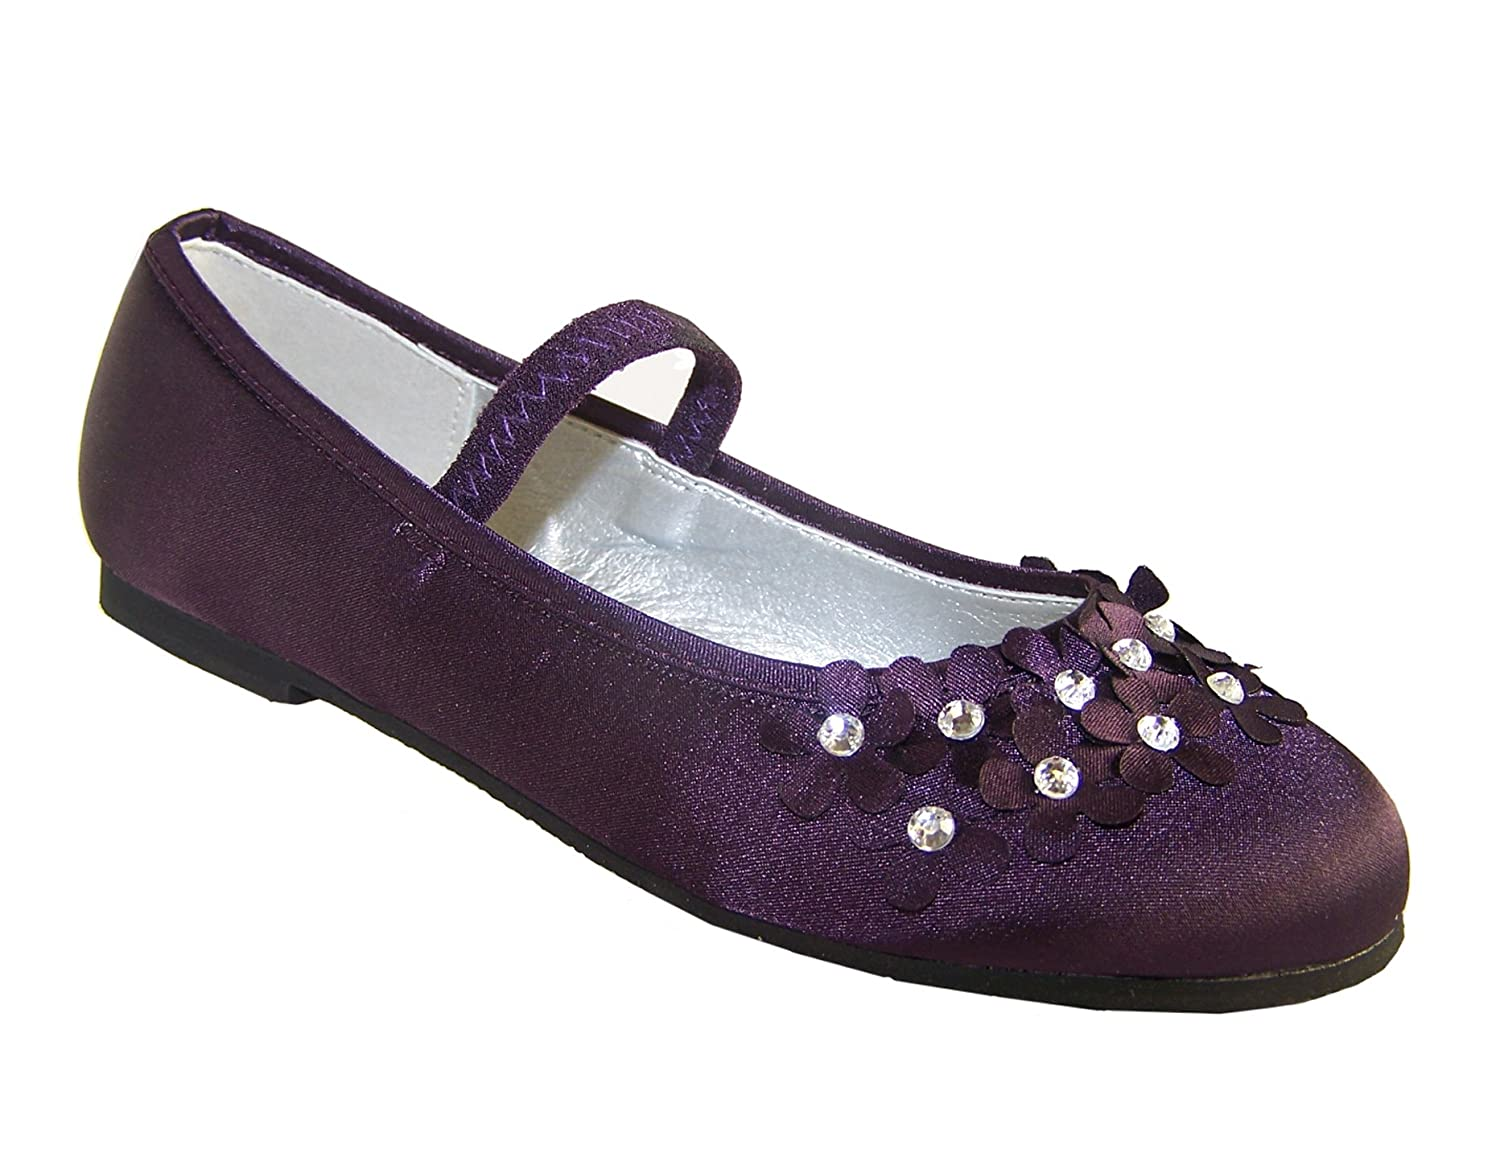 6ebdba3308c3 Girls purple satin flower girl ballerina shoes with flowers and gems size  8  Amazon.co.uk  Shoes   Bags